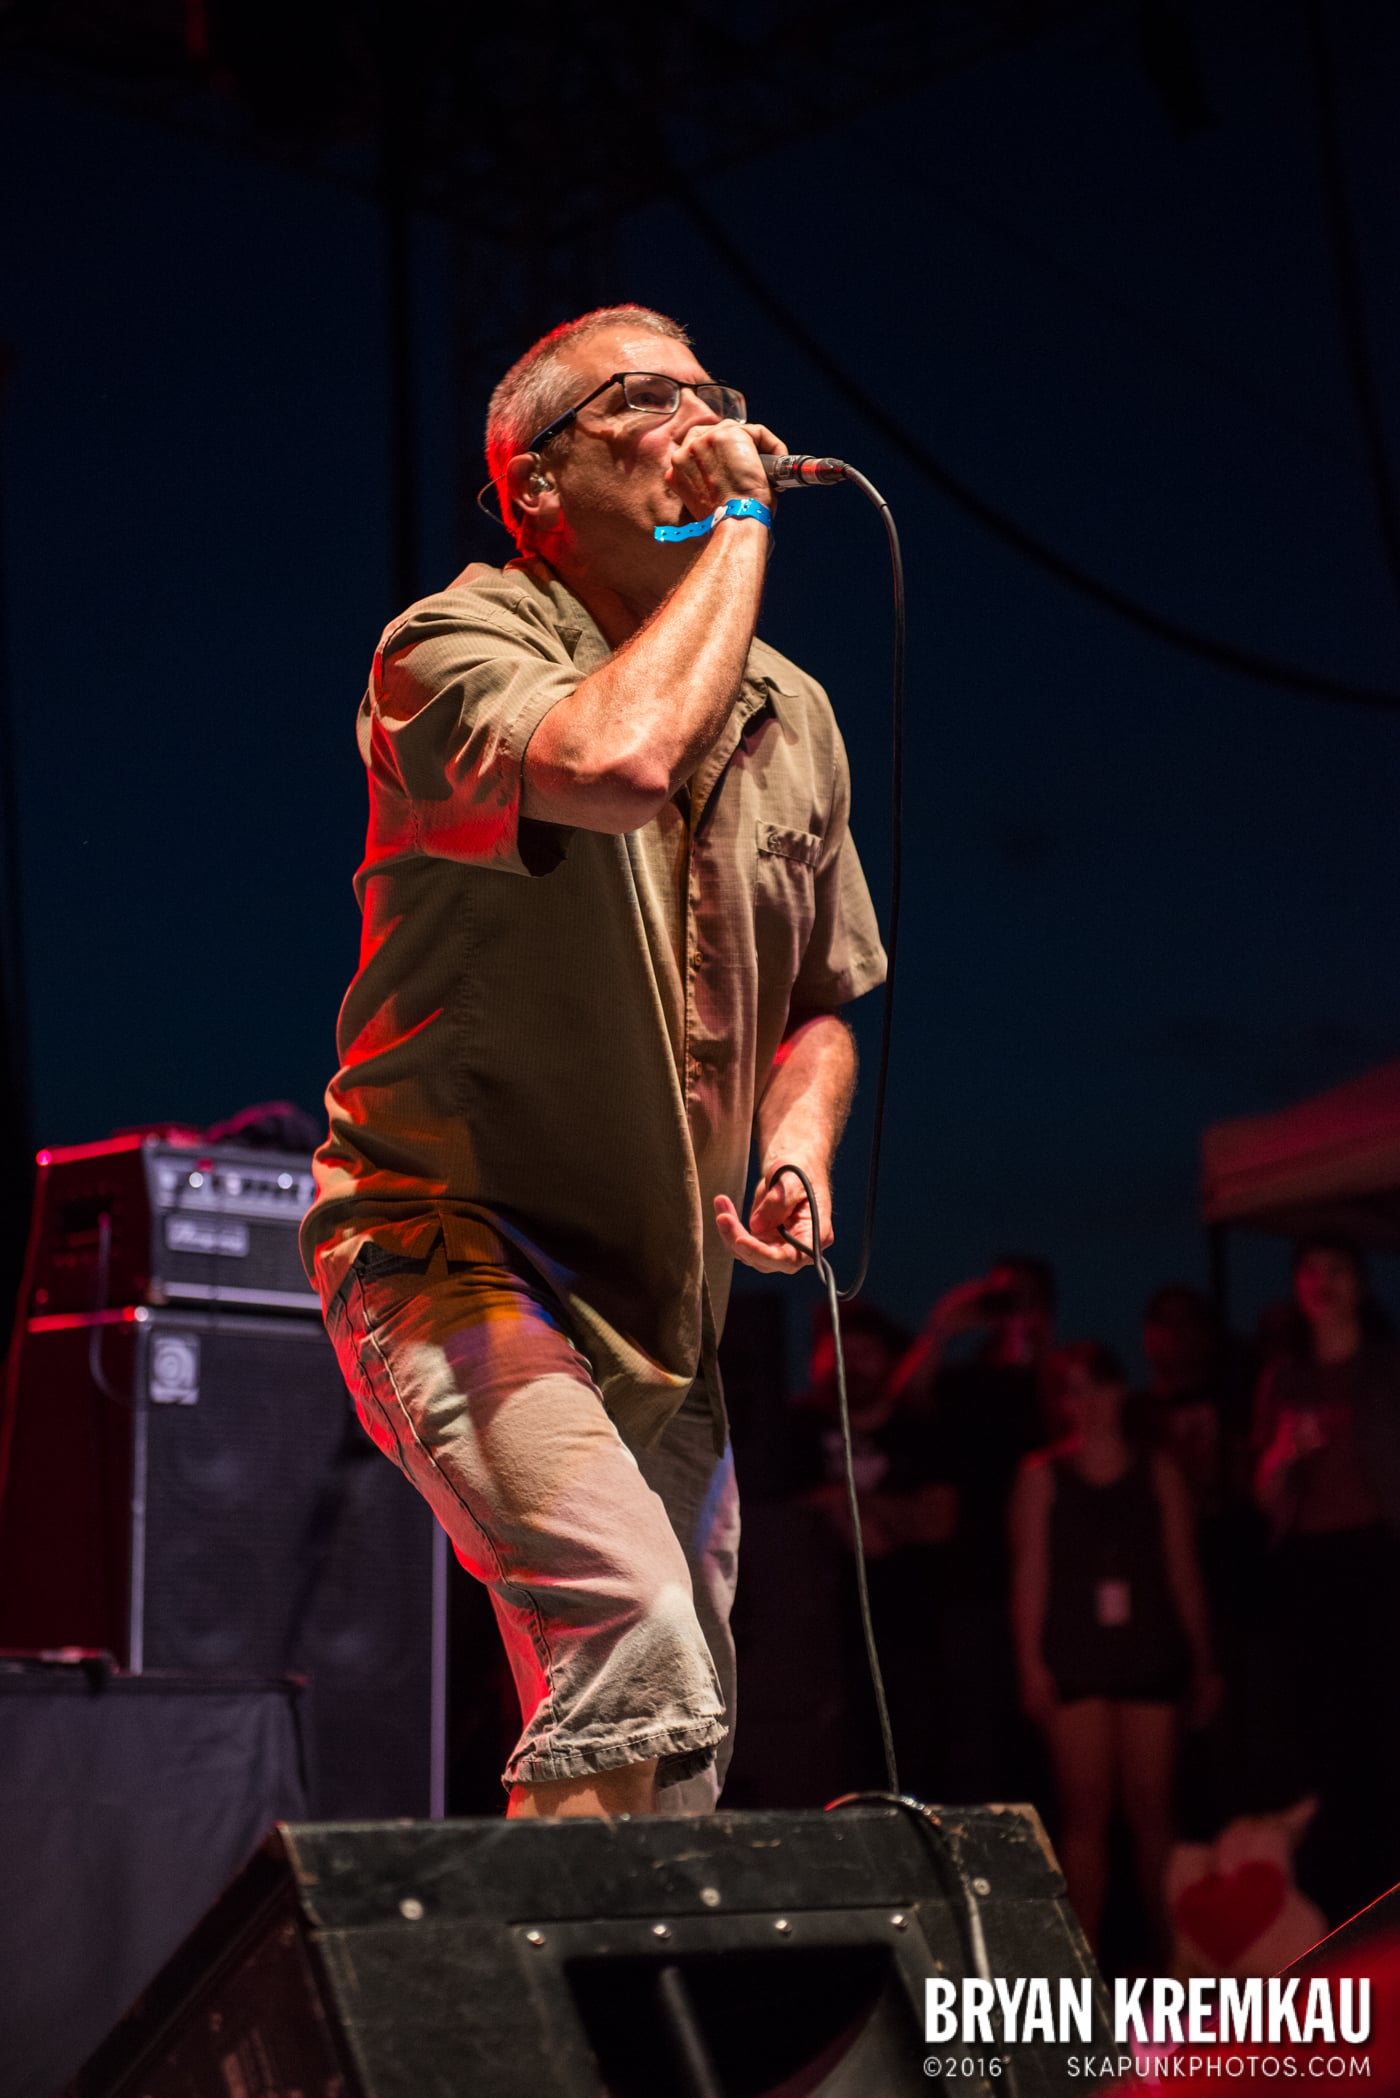 The Descendents @ Punk Rock Bowling, Stone Pony Summerstage, Asbury Park, NJ - 6.11.16 (14)